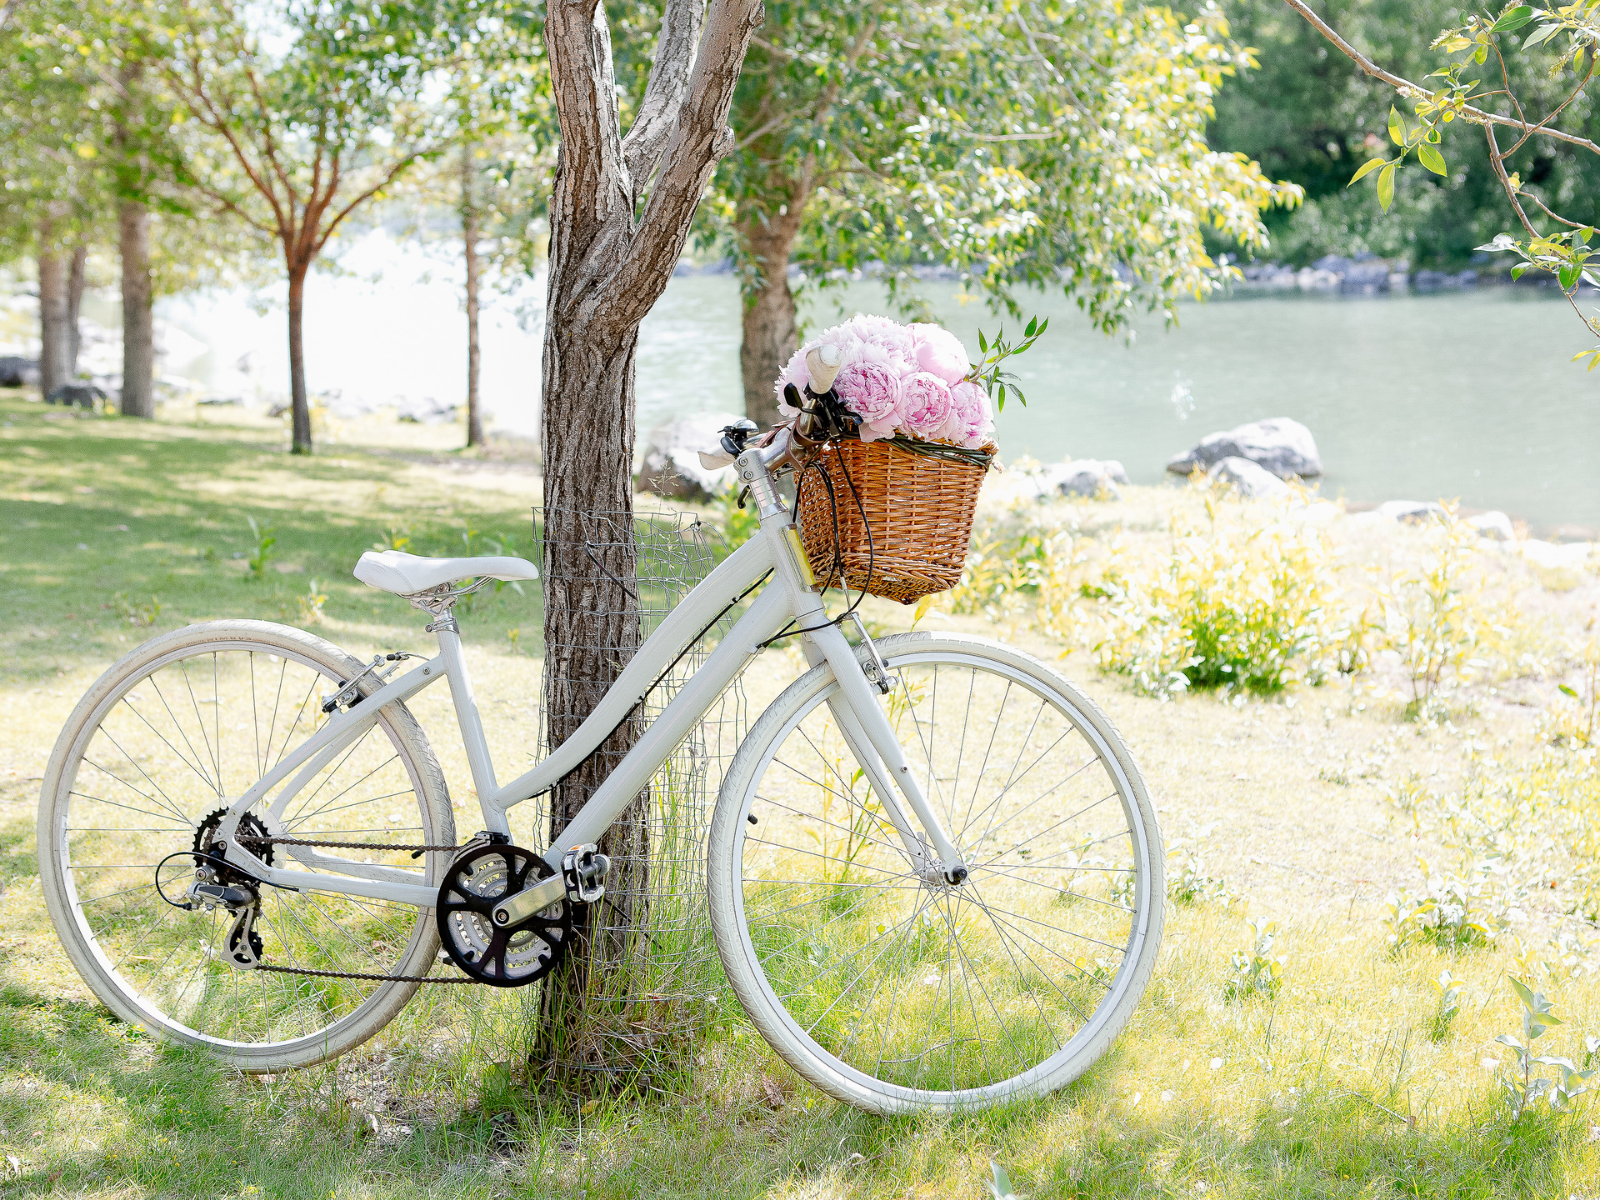 white bike and basket with flowers